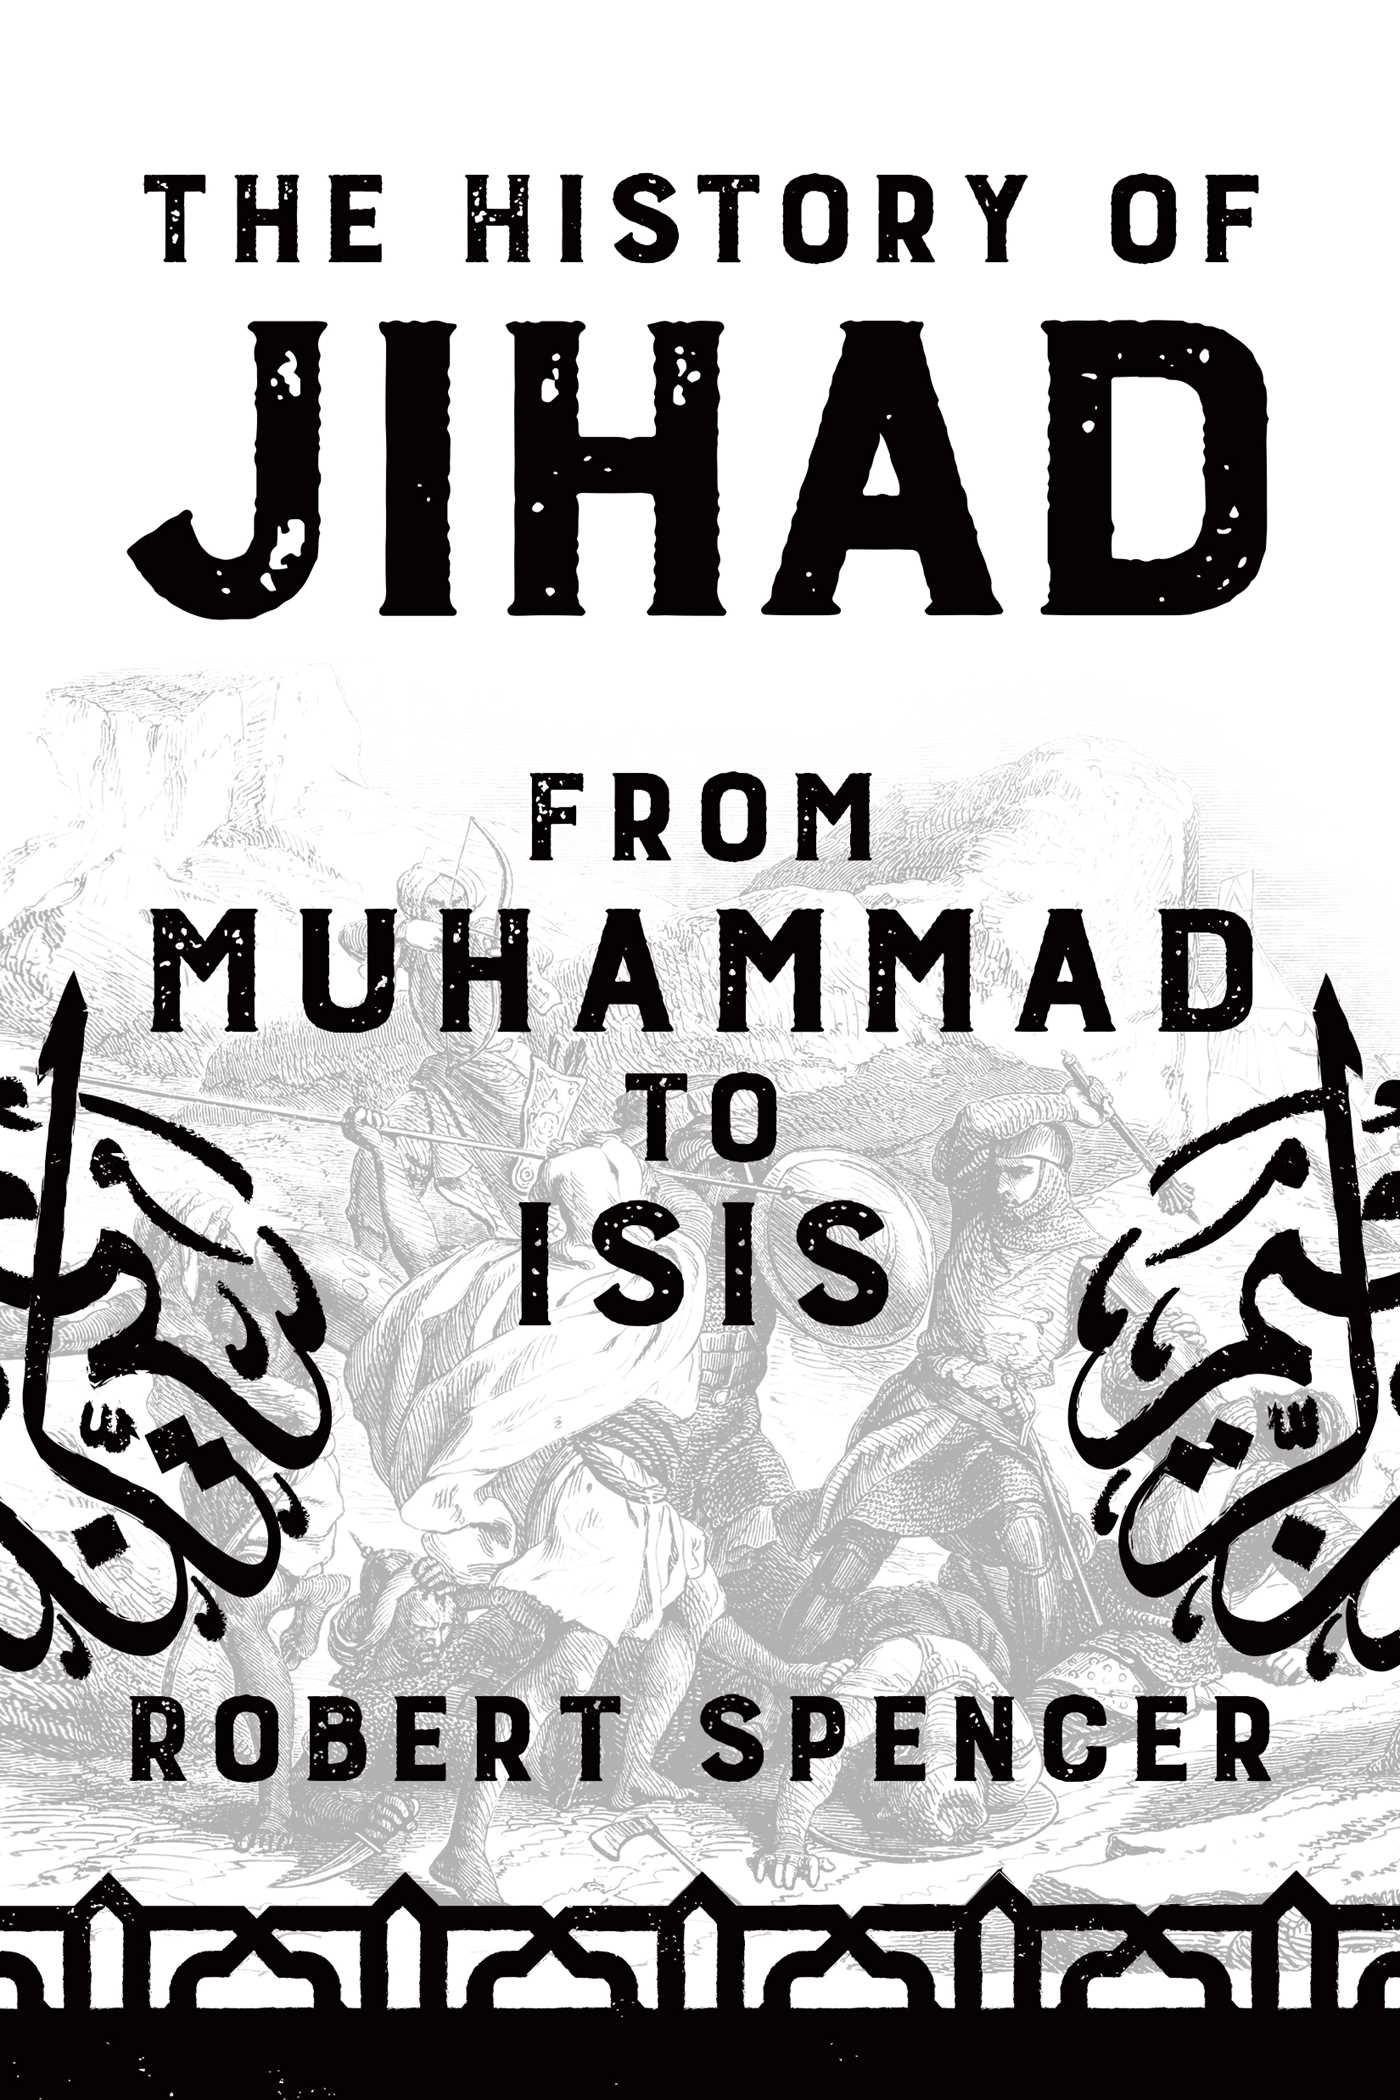 Image result for robert spencer history of jihad